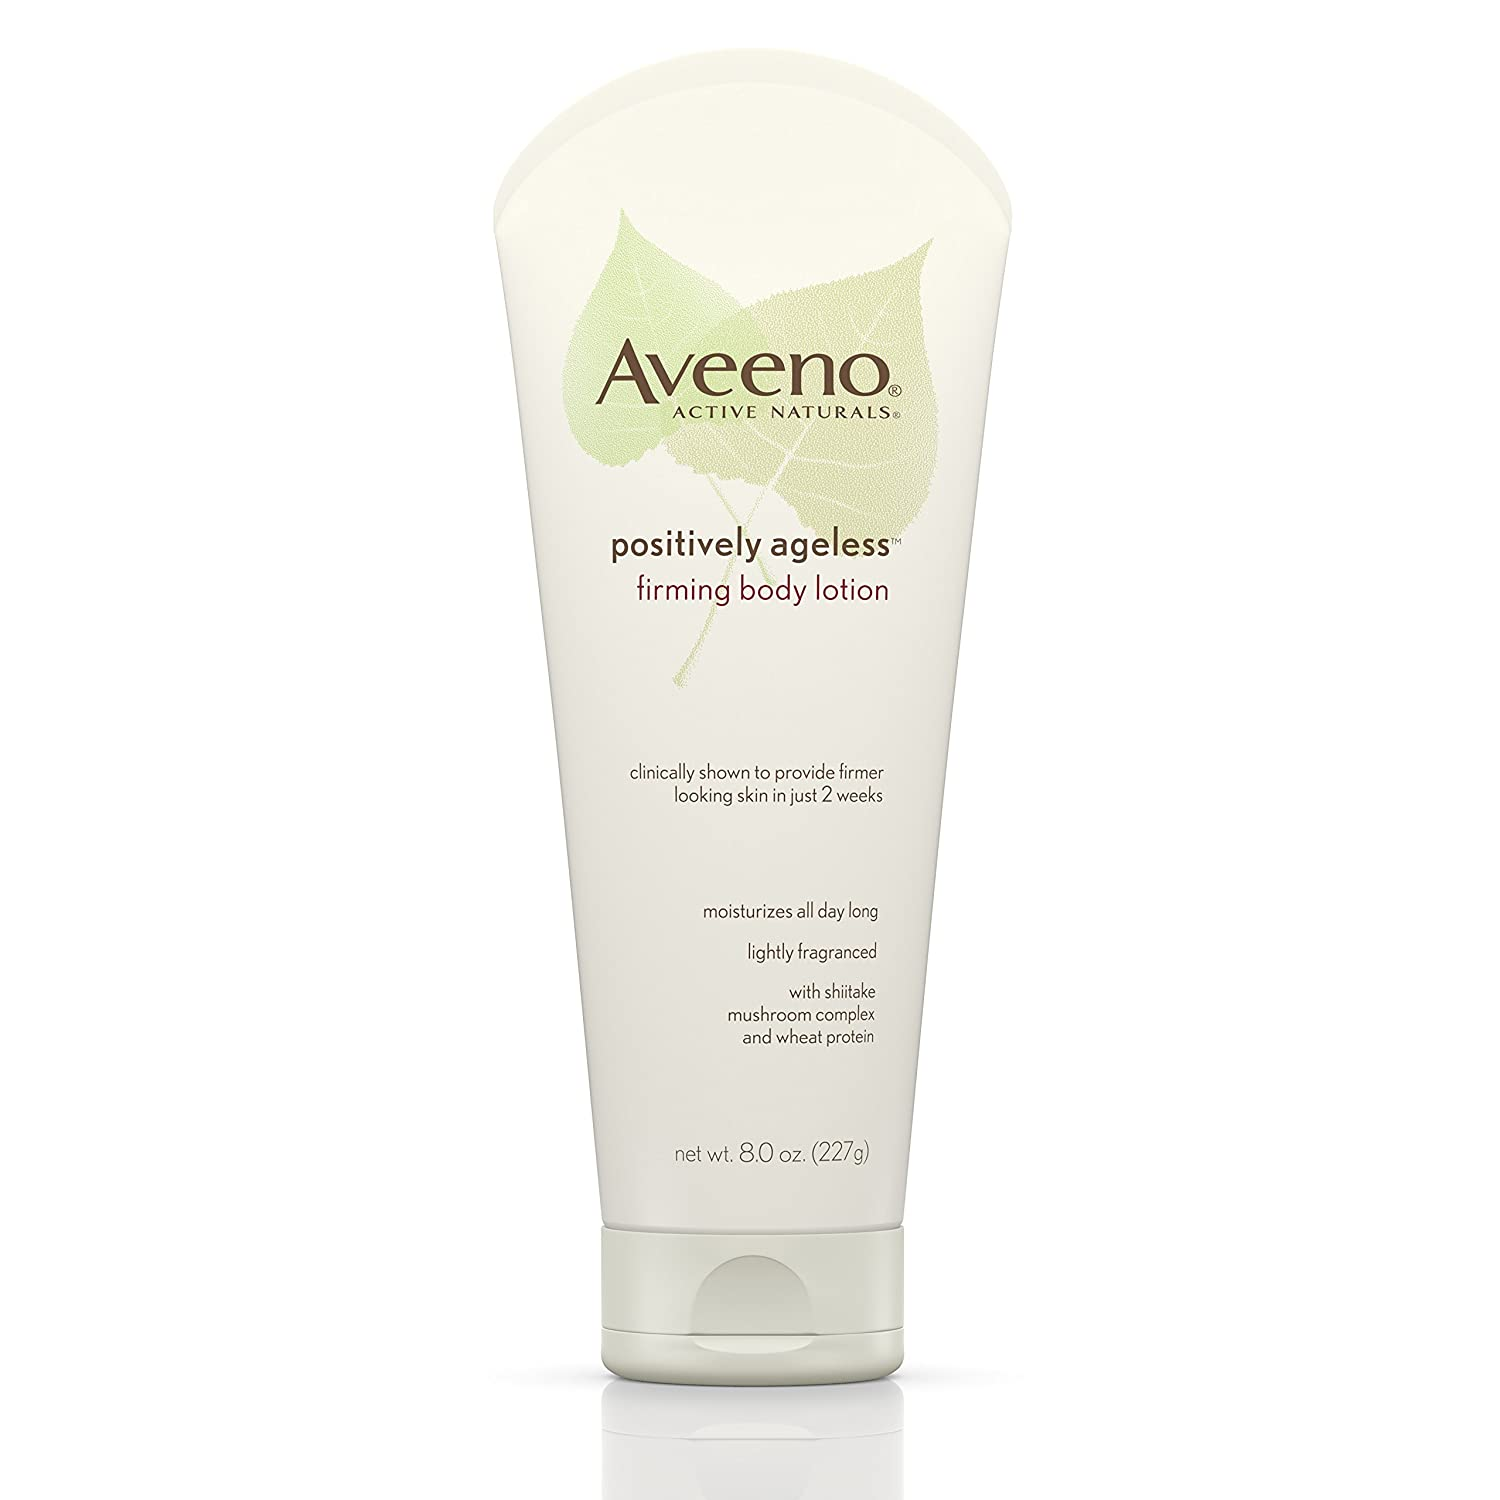 Aveeno Body Moisture Positively Ageless Firming Body Lotion, 8-Ounce (Pack of 2) 381371010776